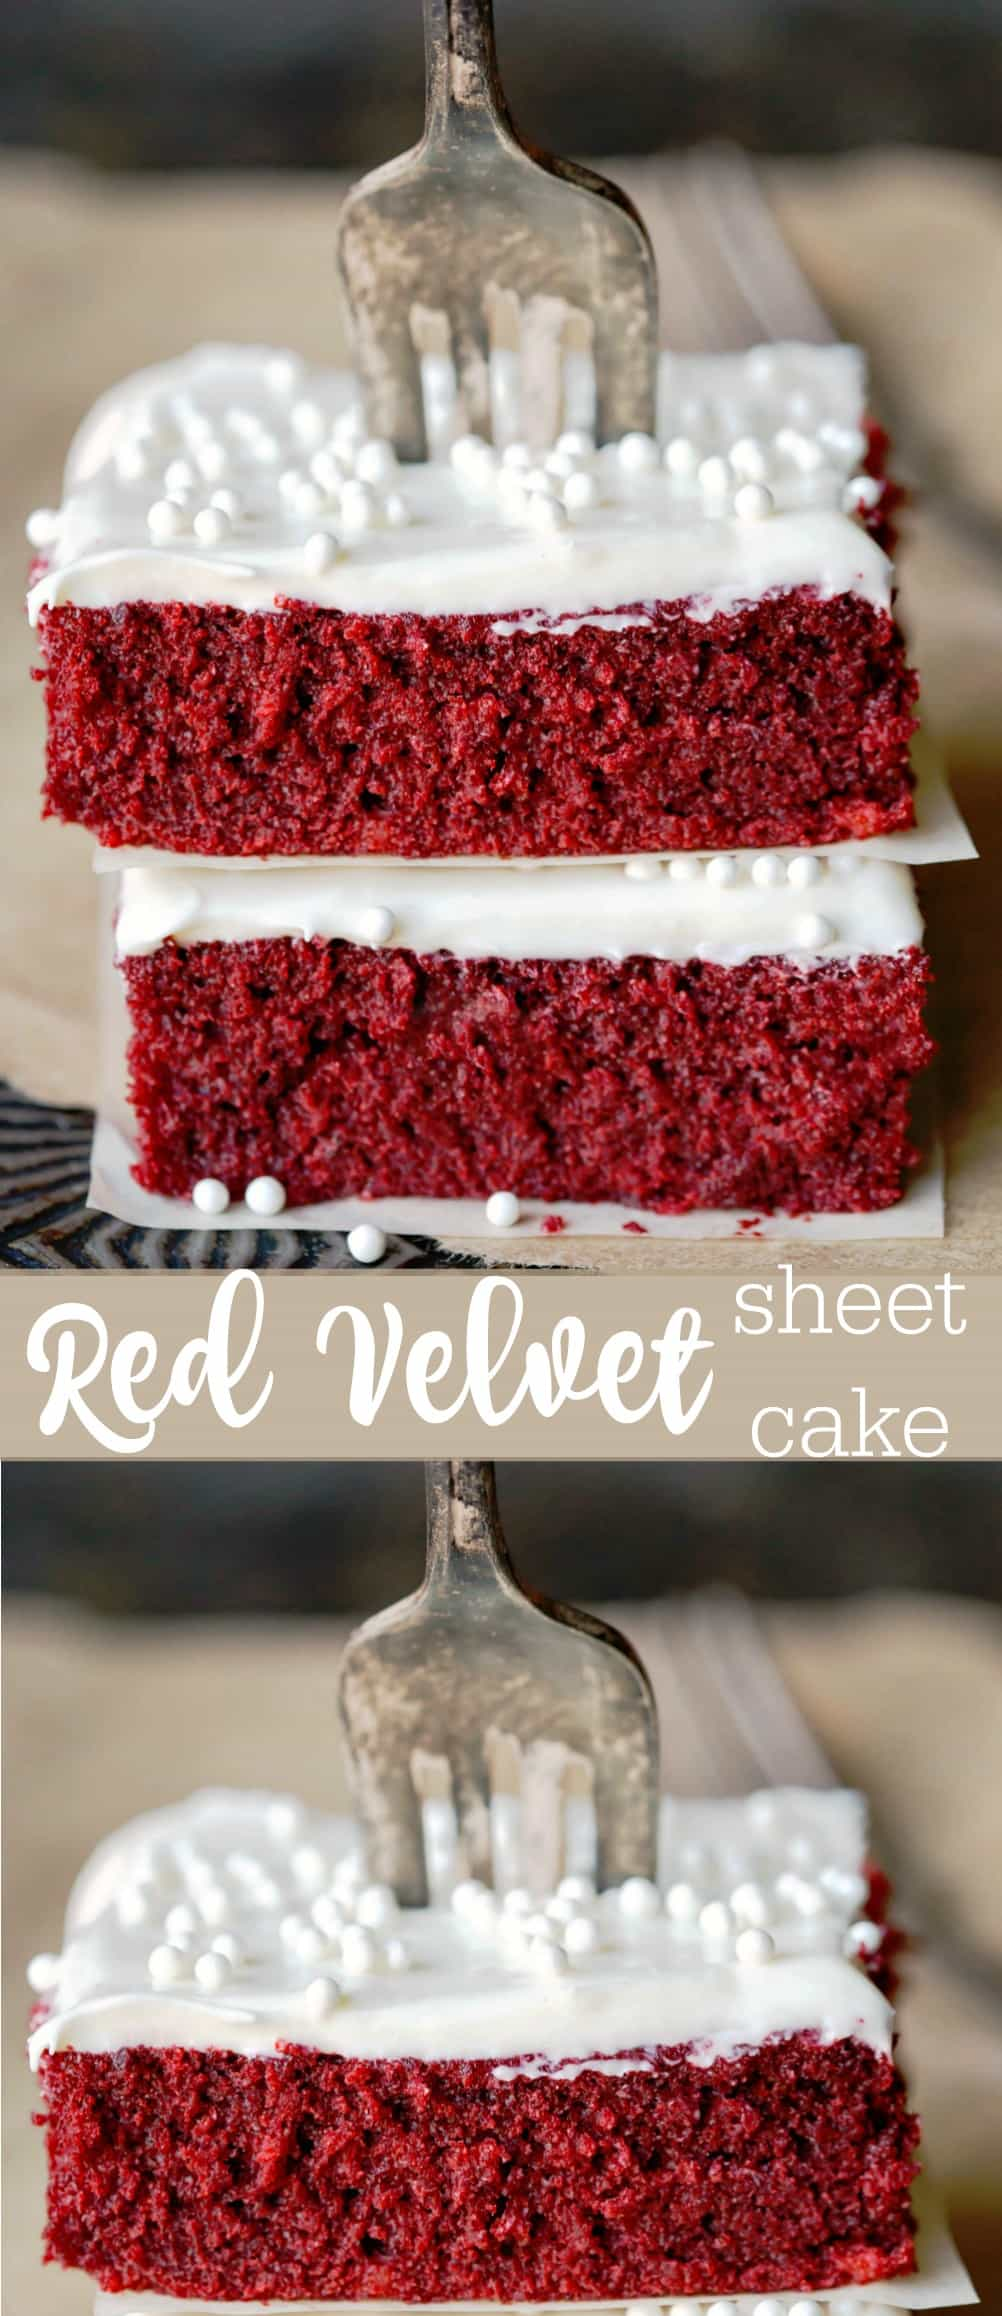 Red Velvet Sheet Cake - i Heart Eating